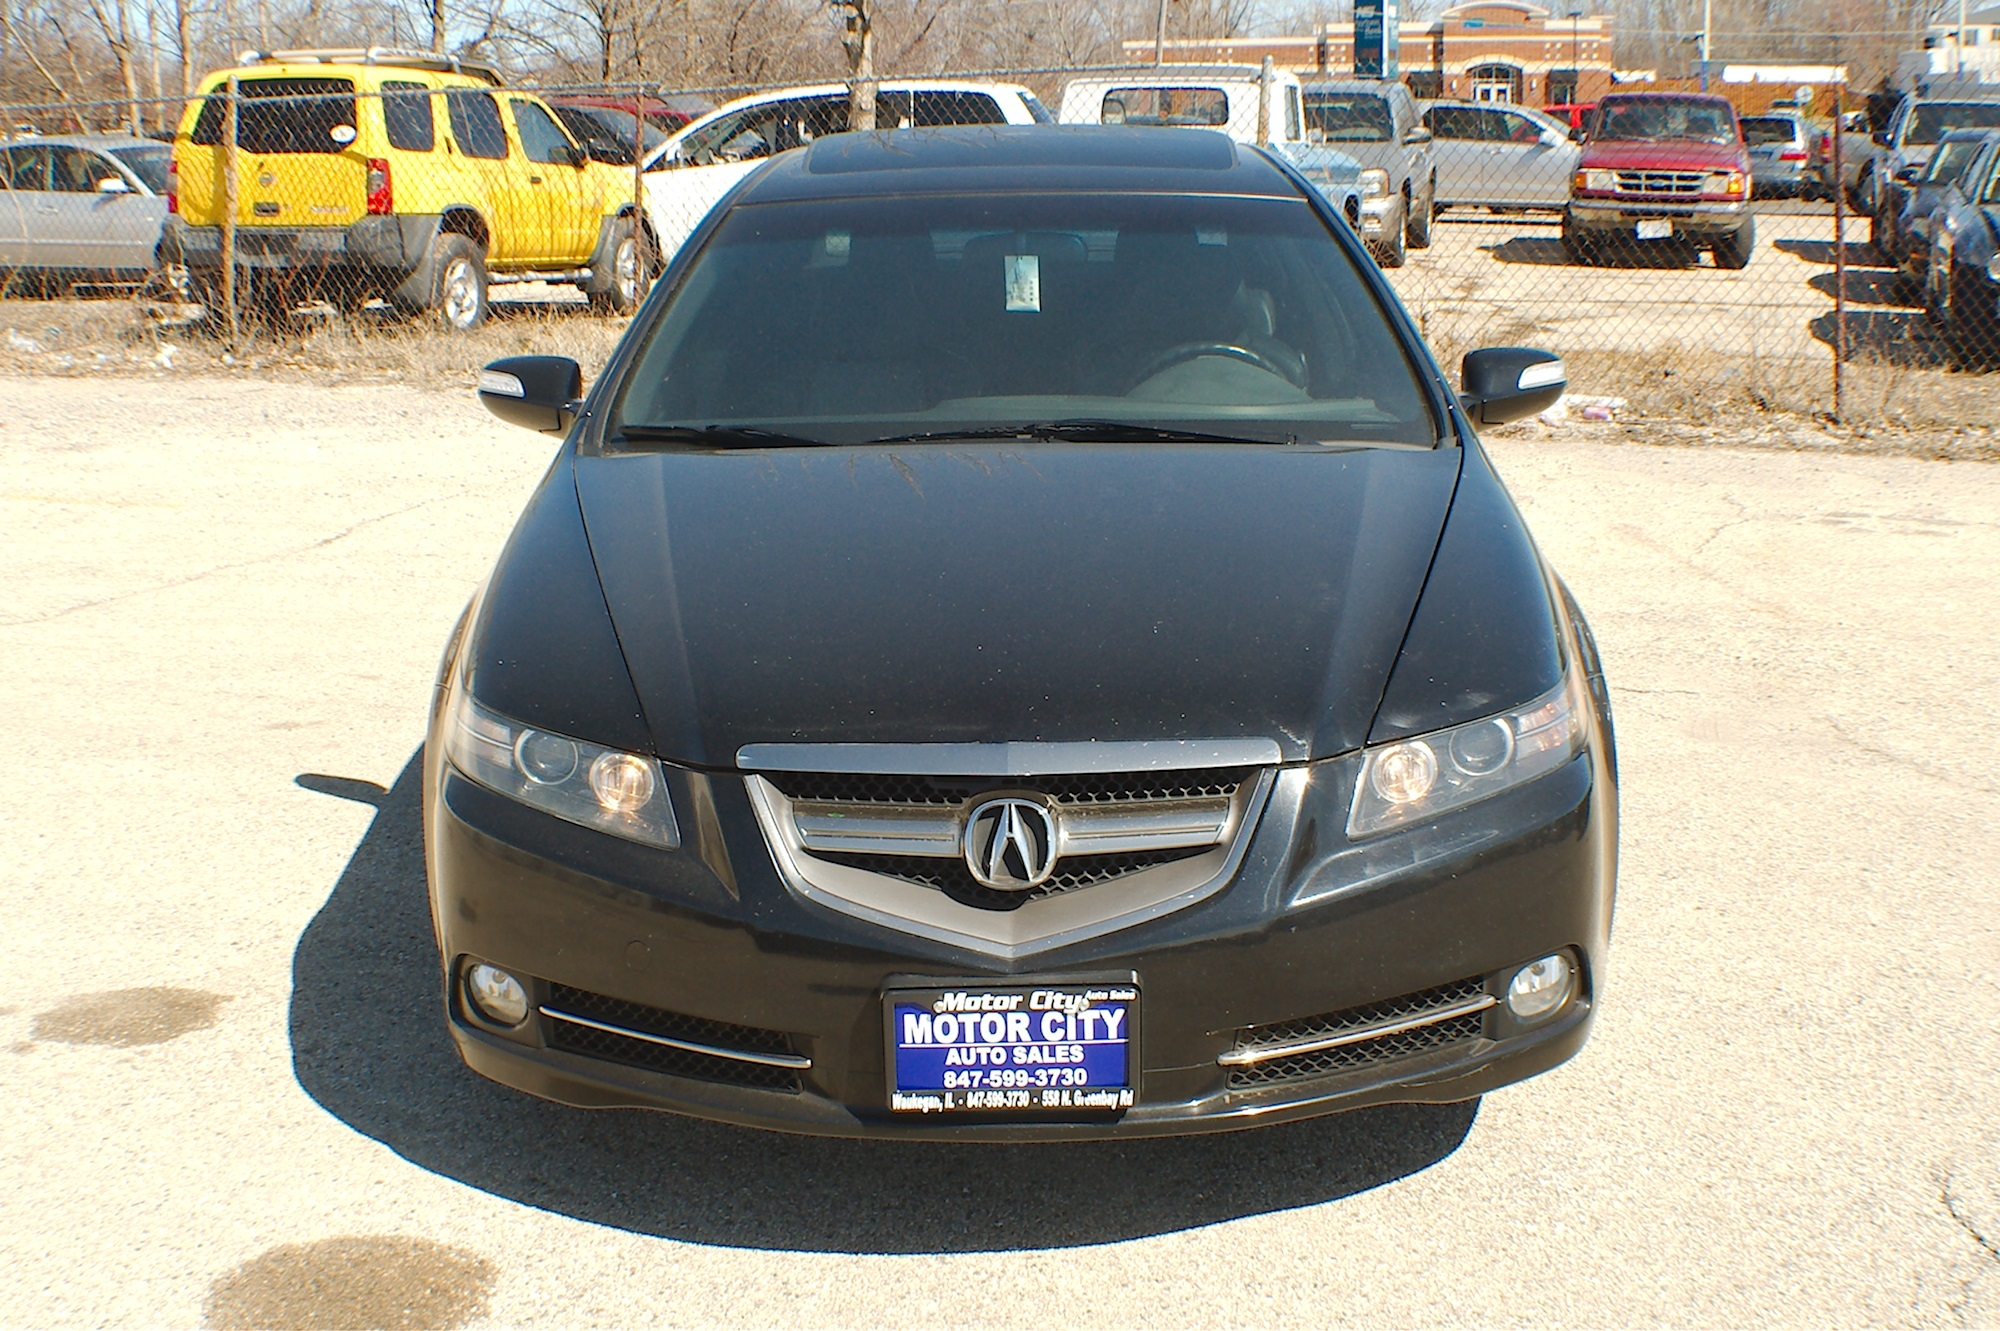 2007 Acura TL Type S Black Sedan Sale on acura xli, acura ls, acura rsx,